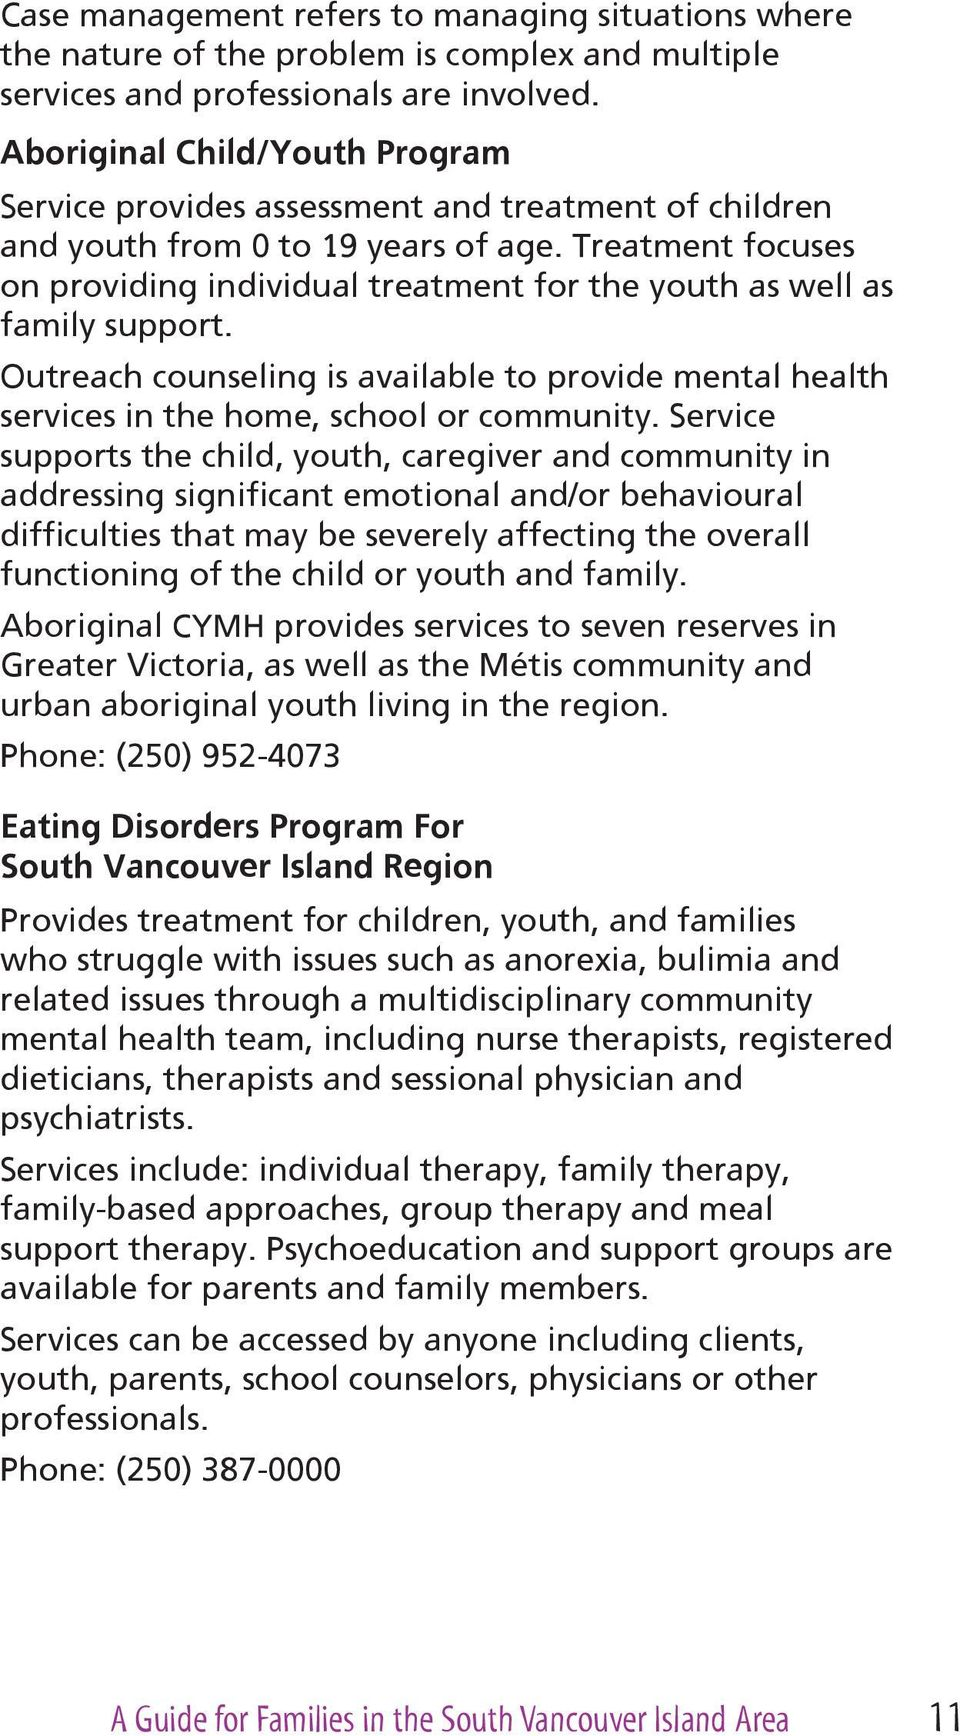 Treatment focuses on providing individual treatment for the youth as well as family support. Outreach counseling is available to provide mental health services in the home, school or community.